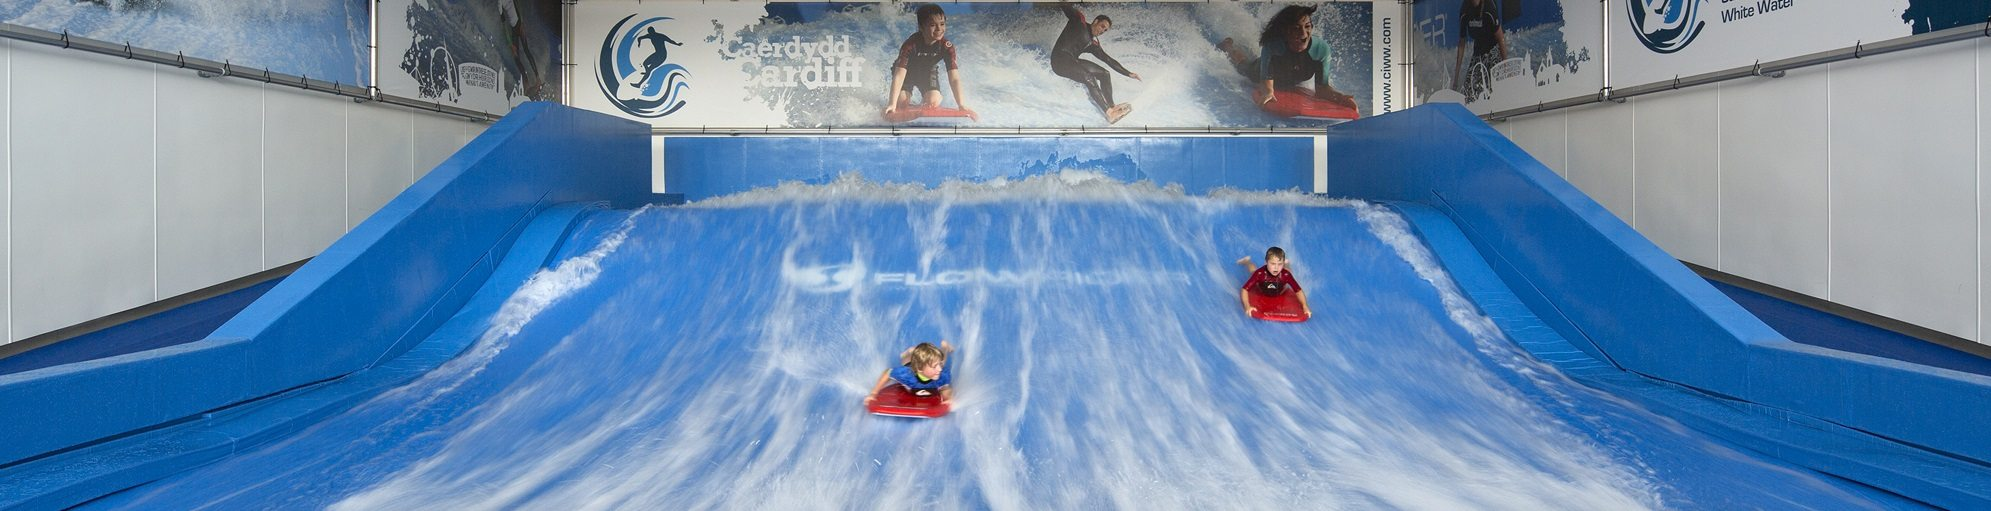 Cardiff International White Water Surf Facility